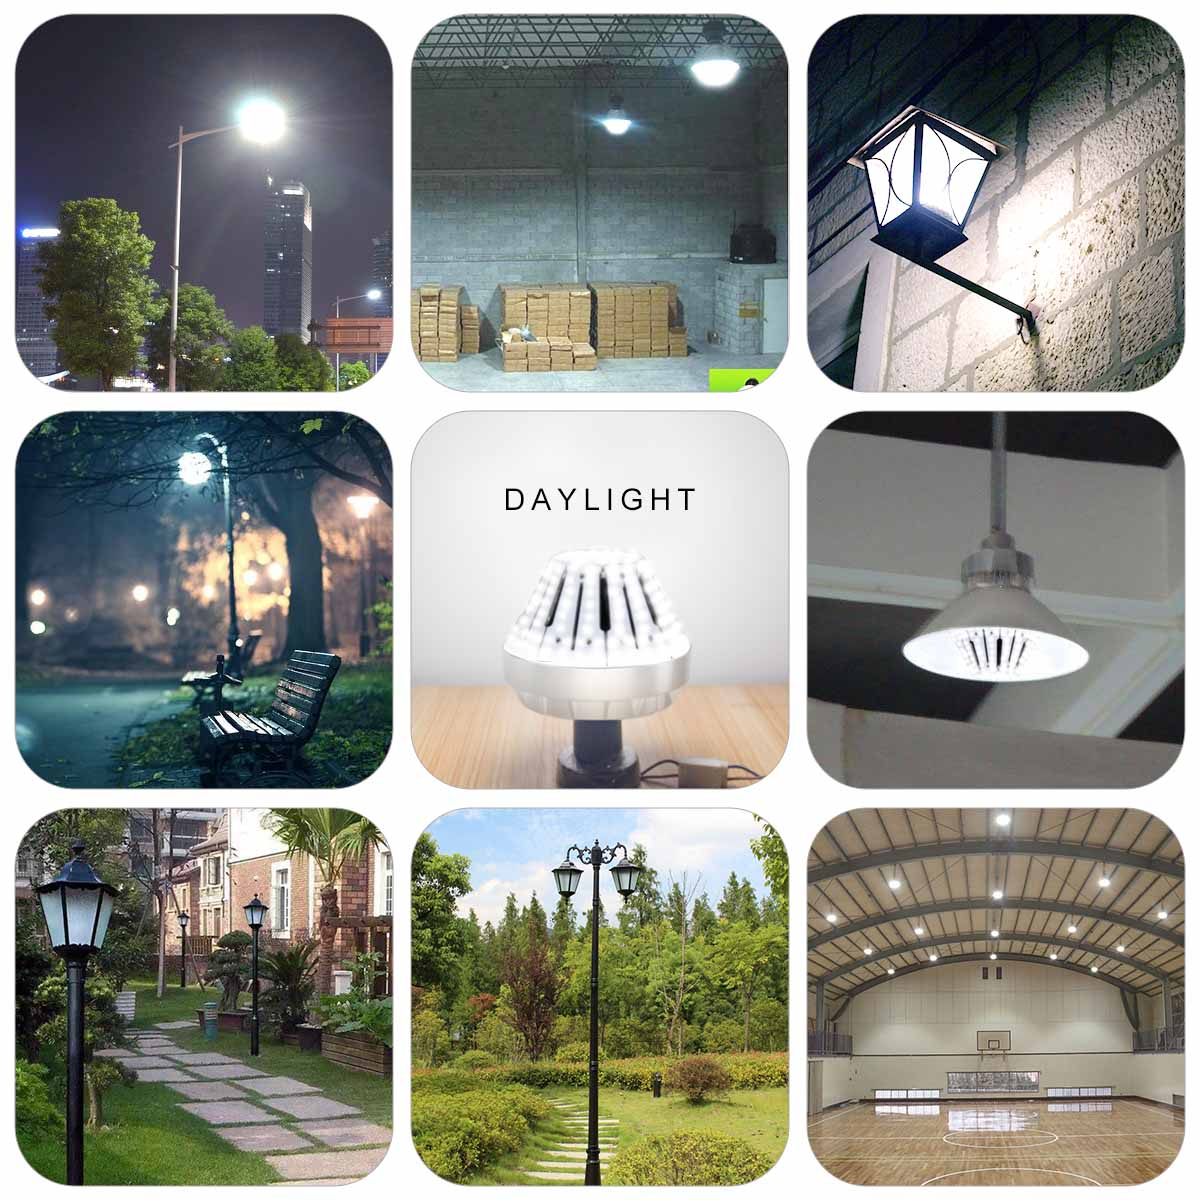 KAWELL 60W LED Garden Light,E39 9000Lm 6500K Daylight Replacement for Fixtures HID/HPS for Indoor Outdoor Large Area Home Street Lamp Lighting Factory Warehouse High Bay Barn Porch Backyard Garden